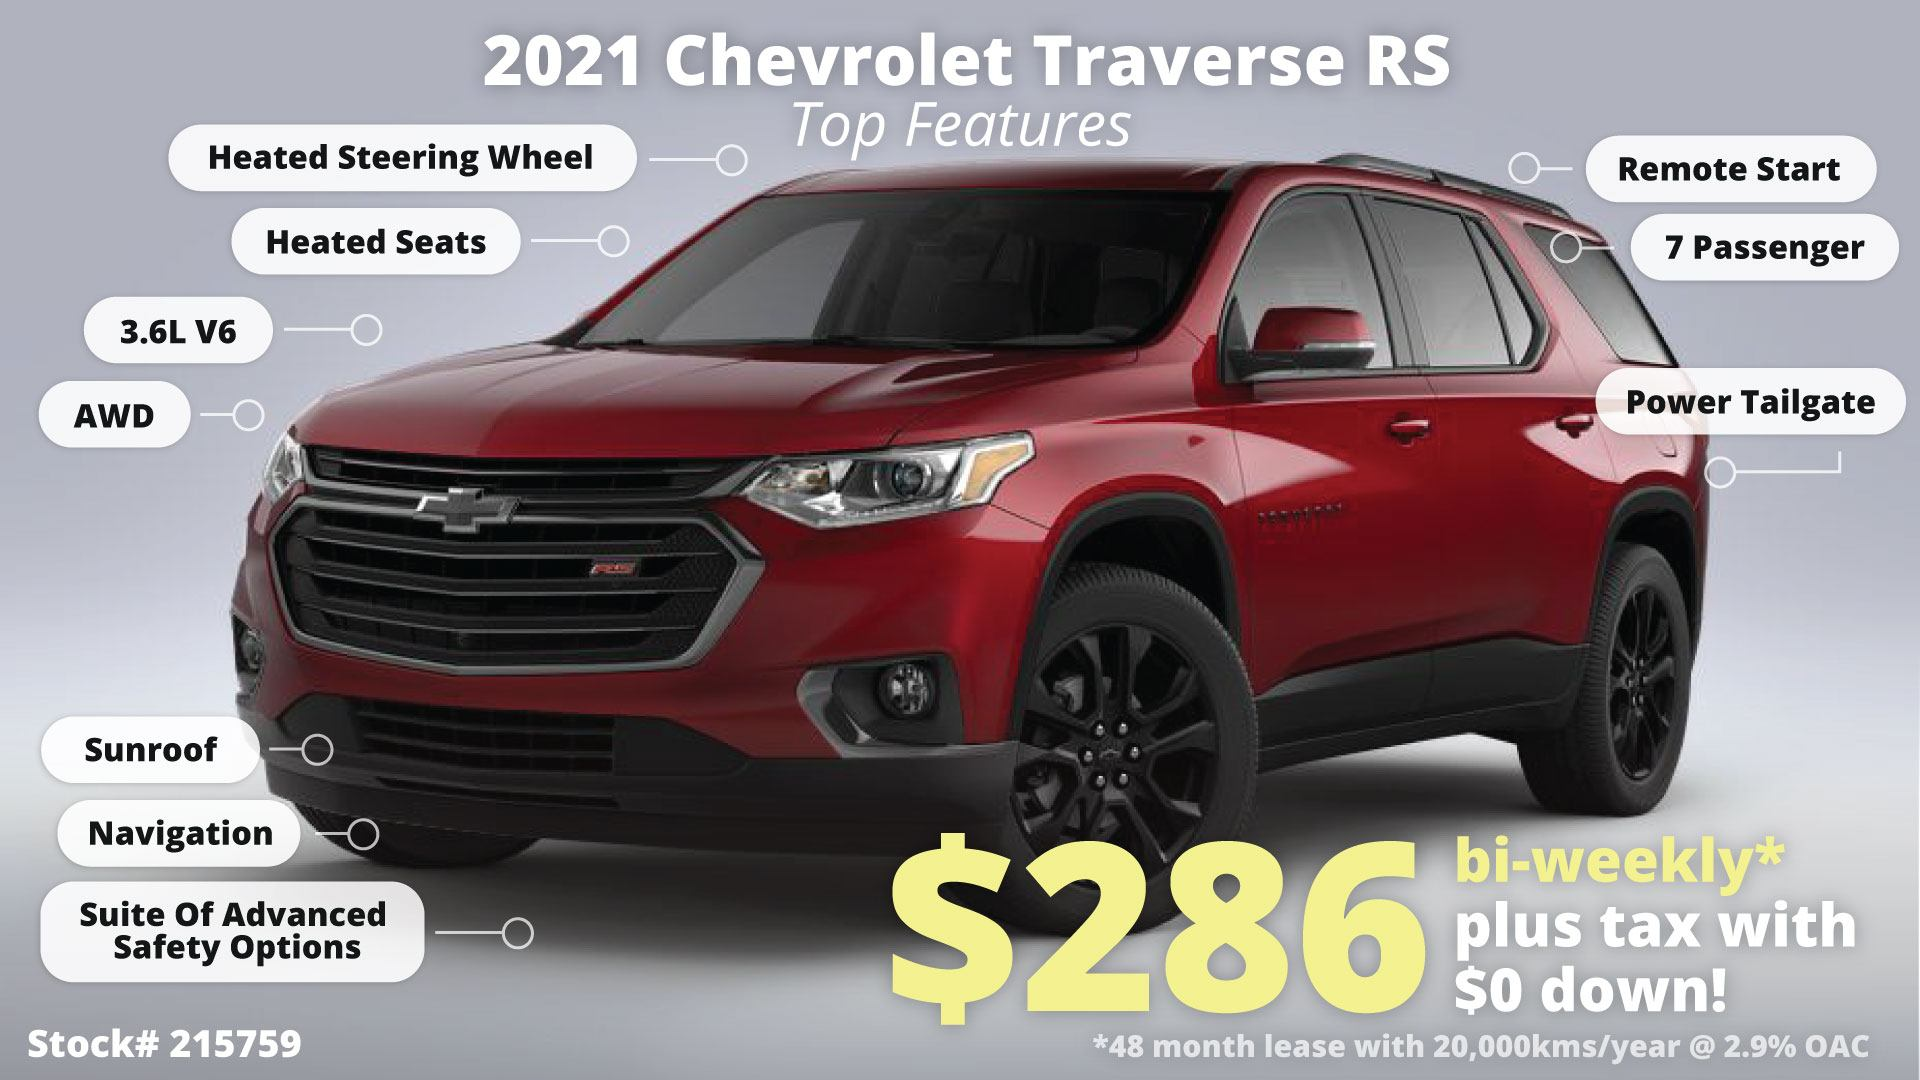 Chevy Traverse Feature